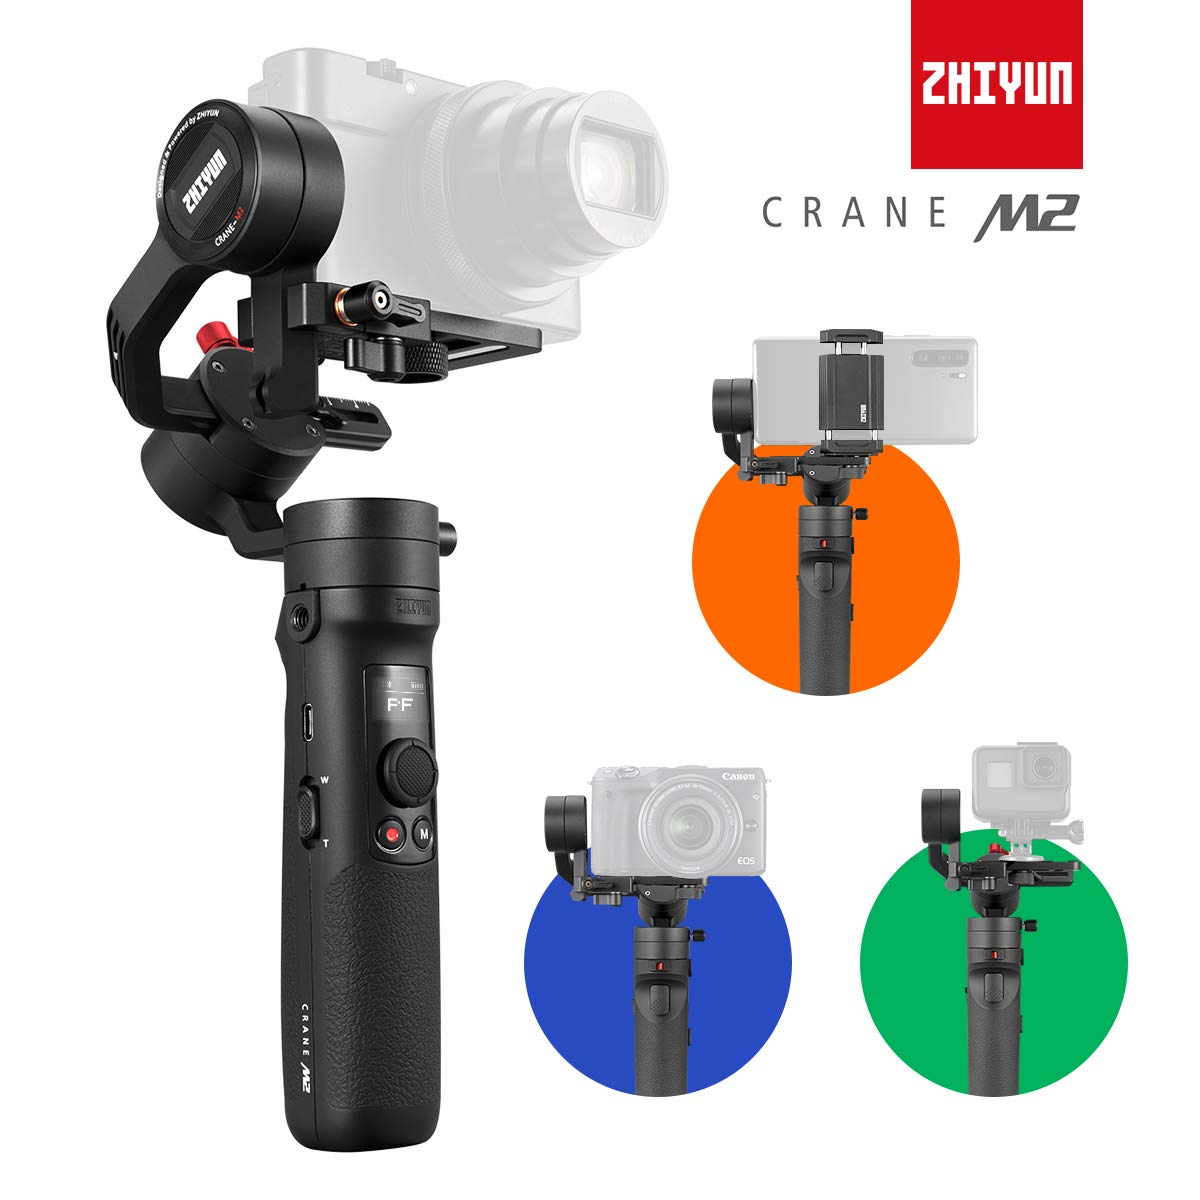 Zhiyun Crane-M2 [Official Dealer] 3-Axis Gimbal Stabilizer for Smartphones Action Camera DC Mirrorless Camera, zhiyun-crane-m2-gimbal-smartphone-stabilizer by zhi yun